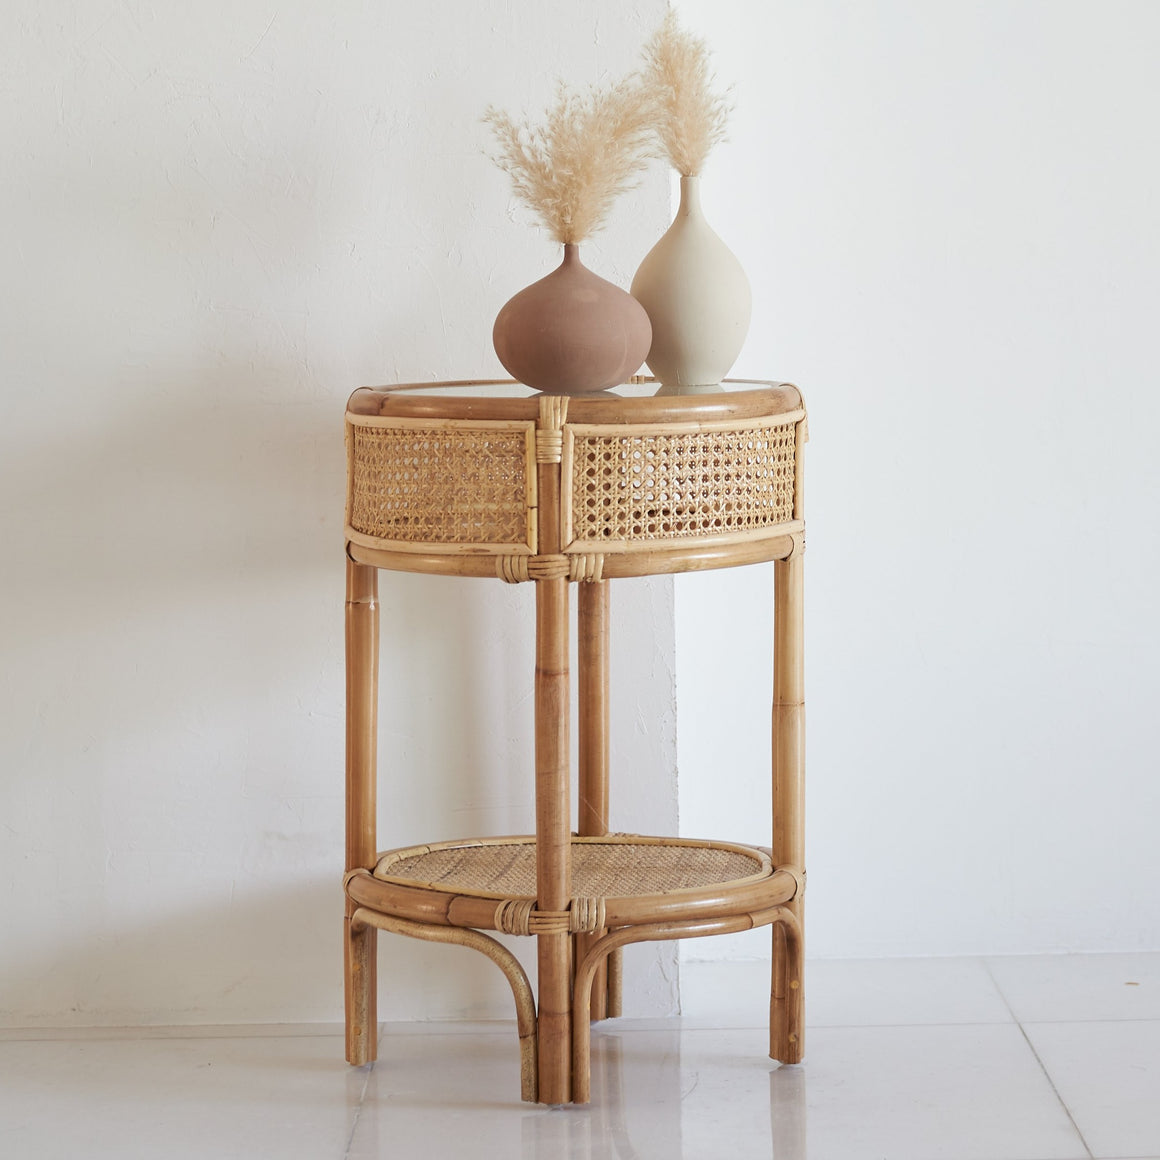 Dusk Side Table / الطاولة